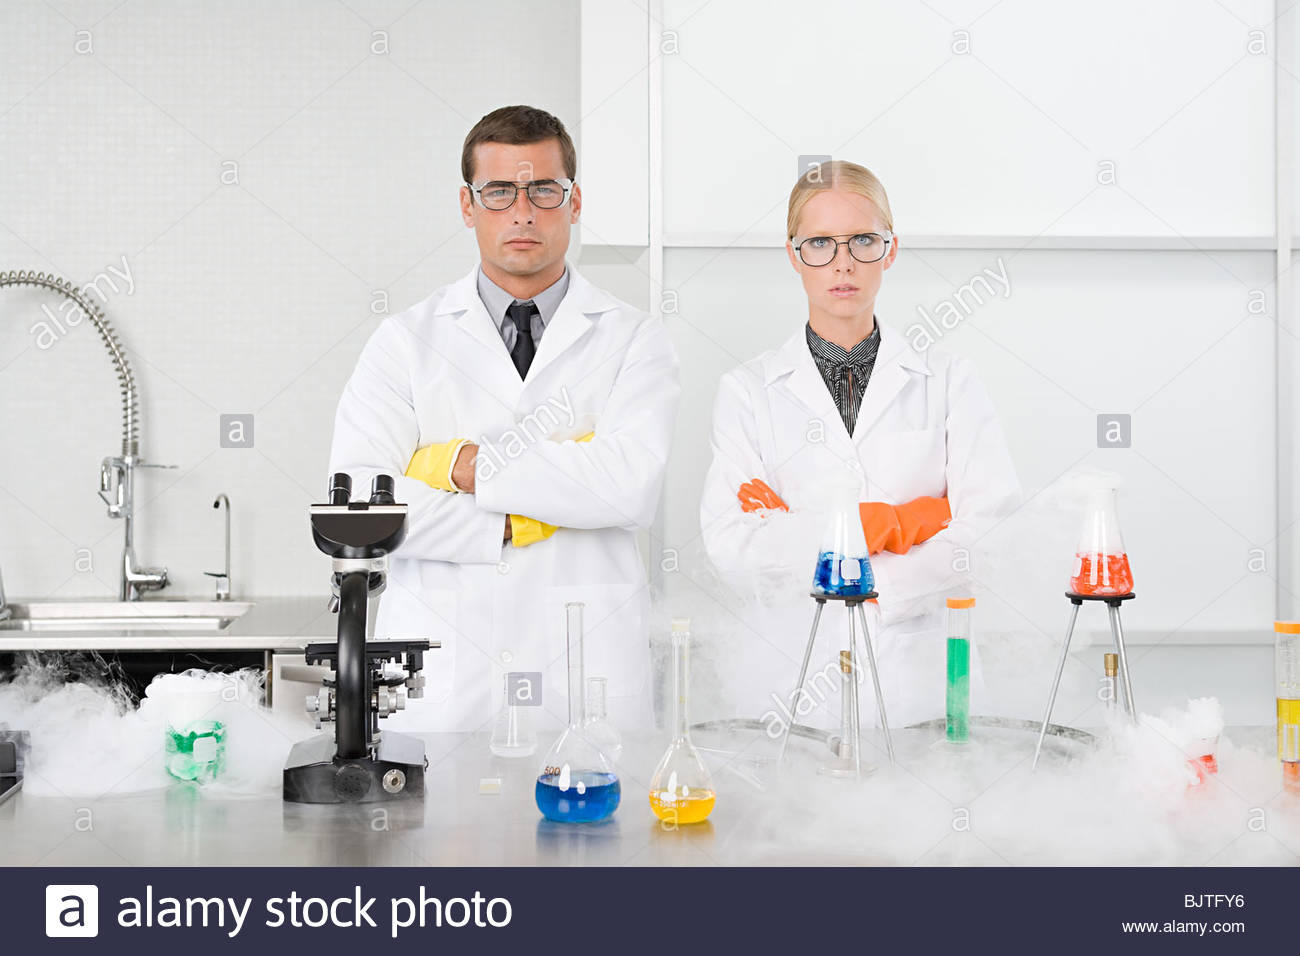 Portrait of scientists in a laboratory - Stock Image